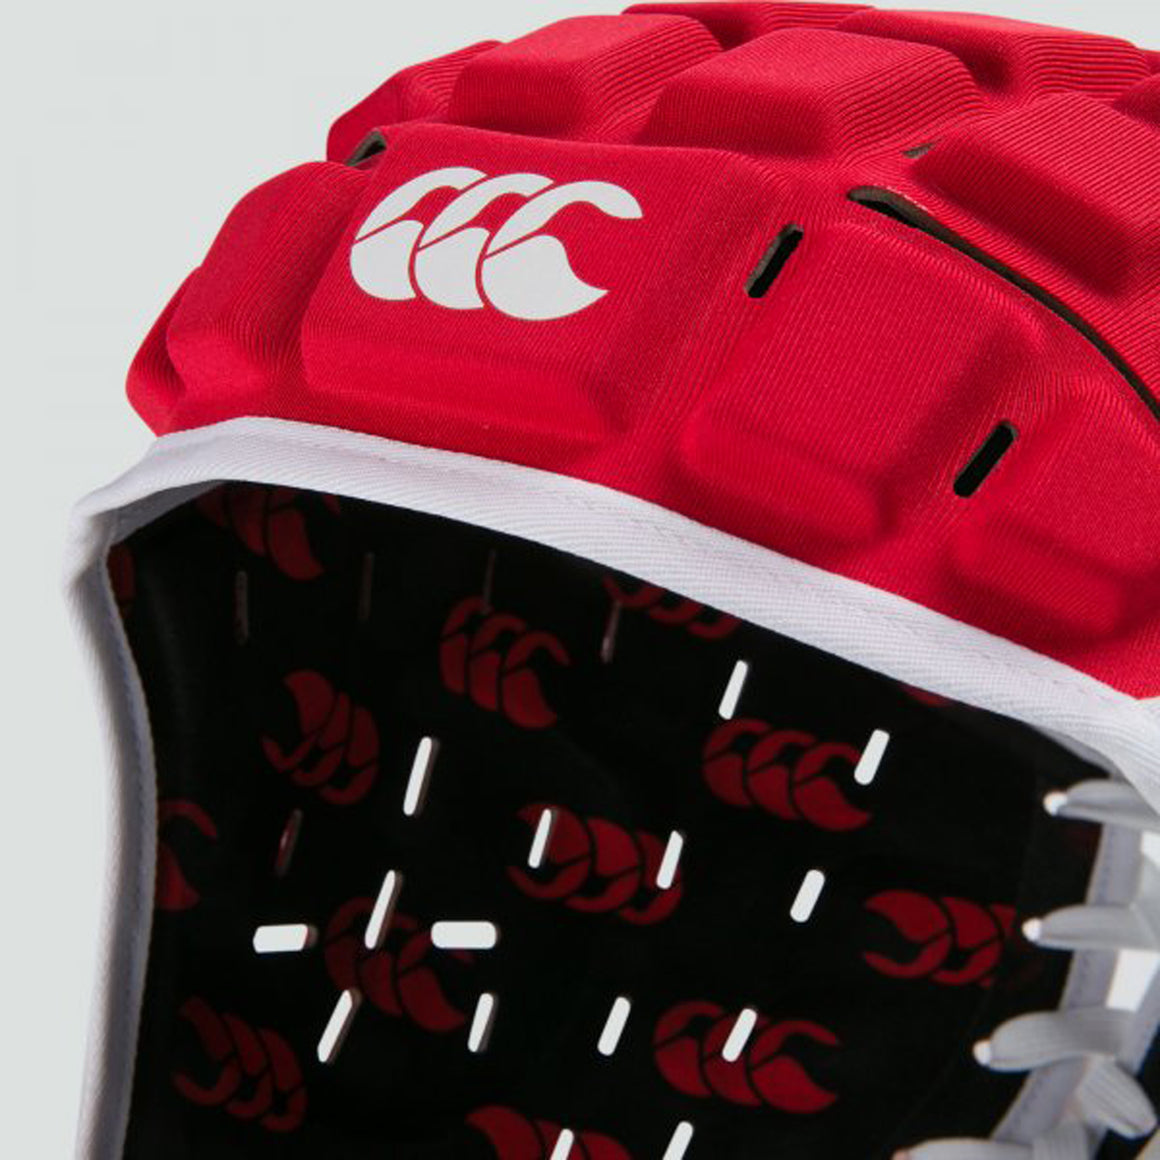 Reinforcer Headguard in Bright Red